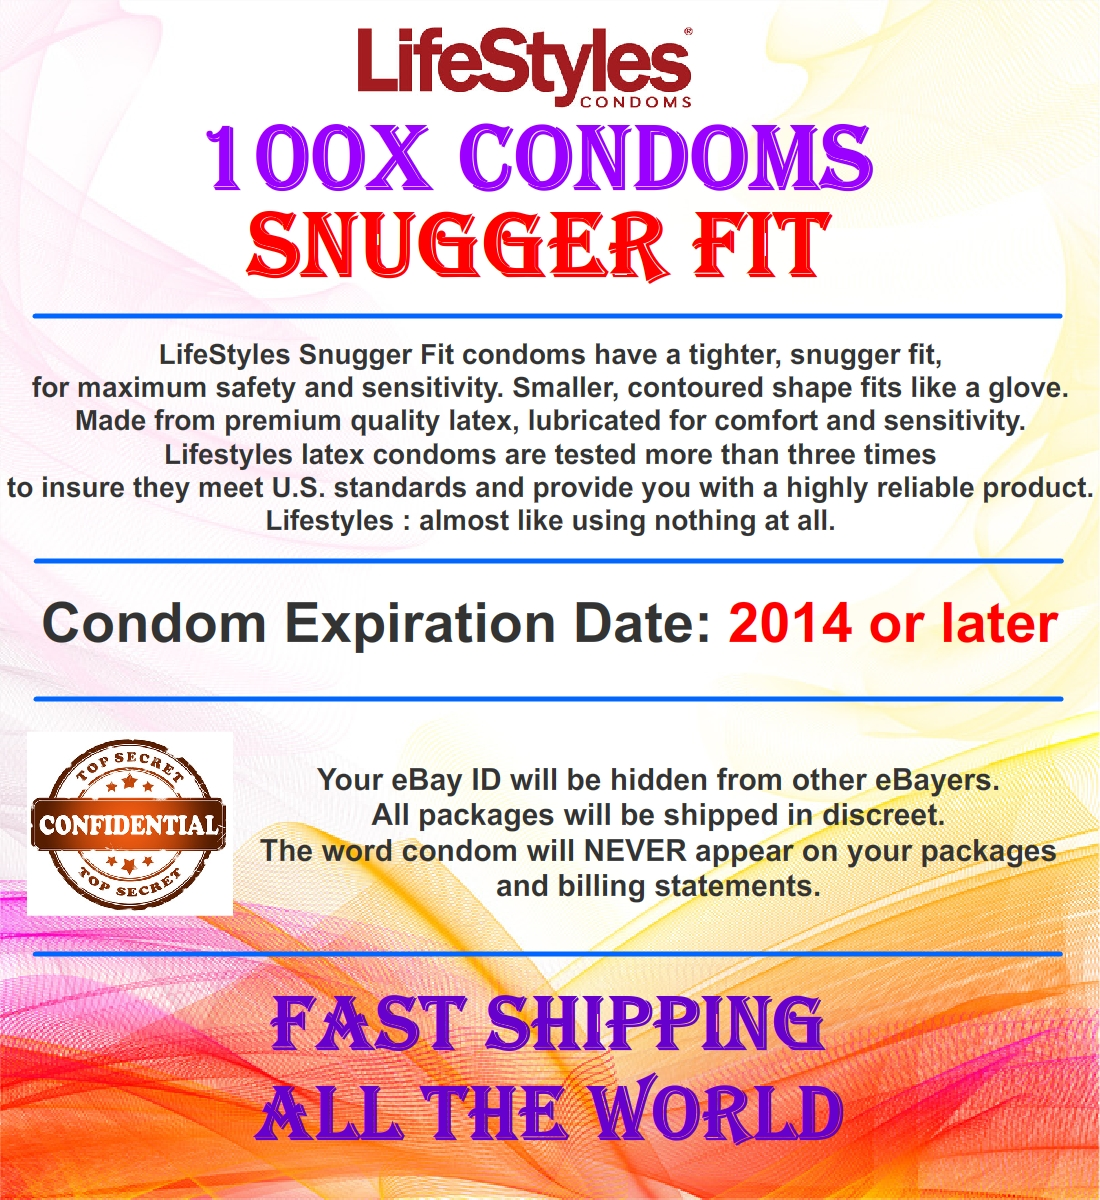 Snugger fit small size condoms from durex crown iron grip 12 pac